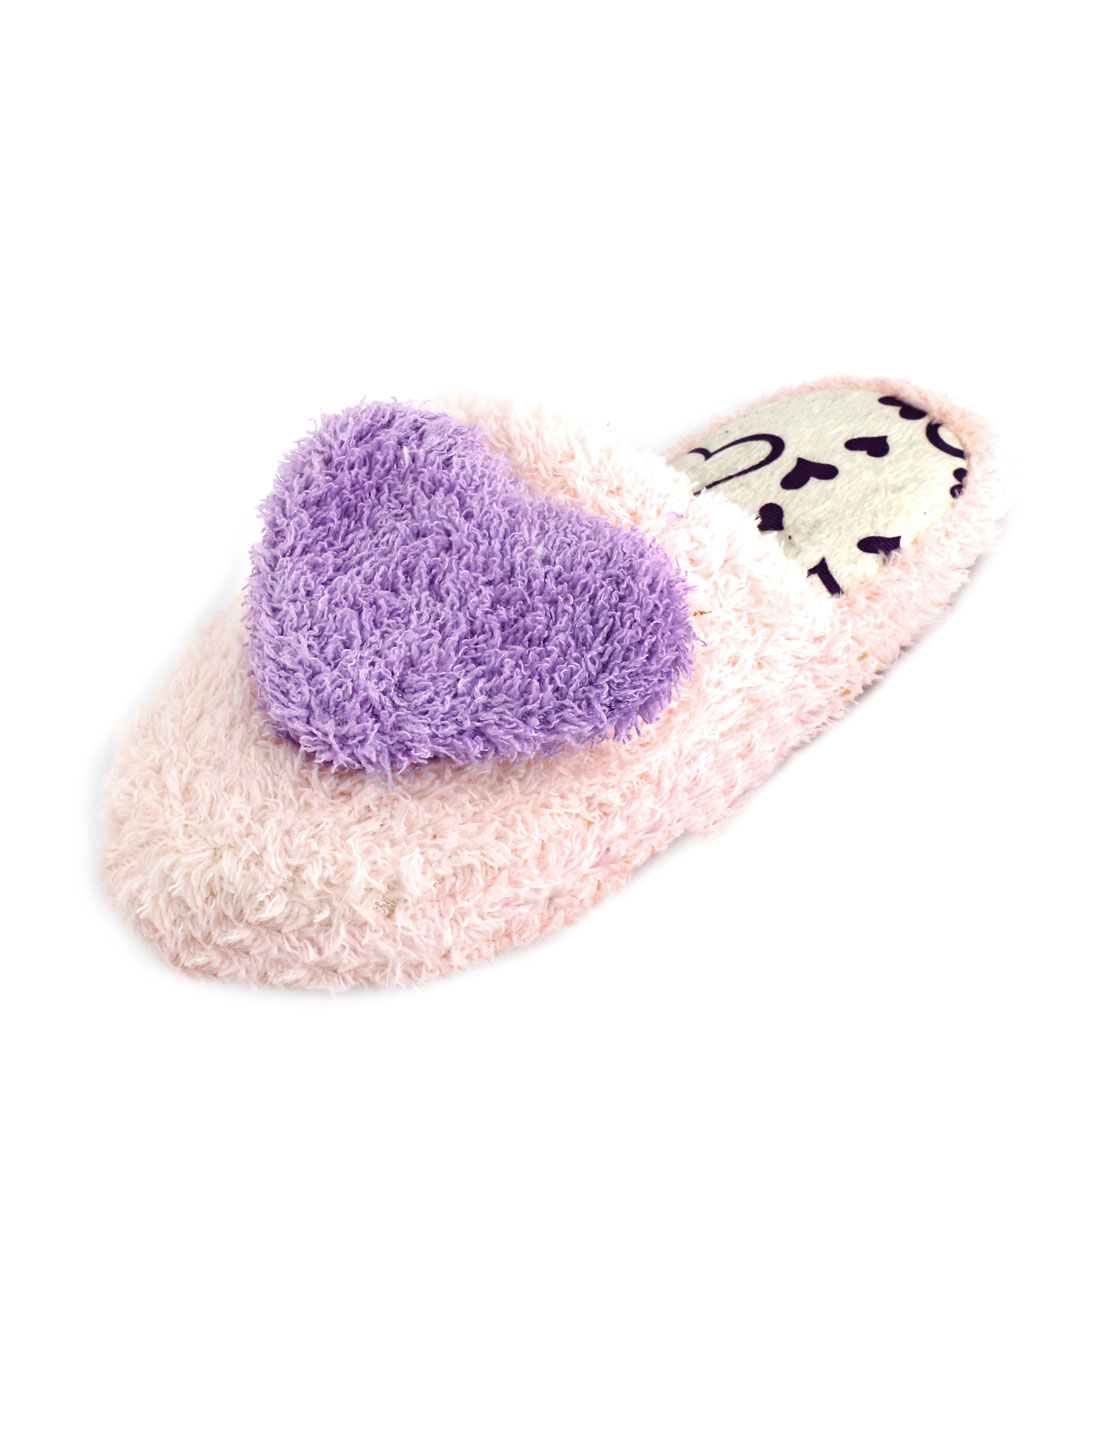 Ladies Light Pink Purple Heart Decor Plush Warm Warming Slippers UK 6.5